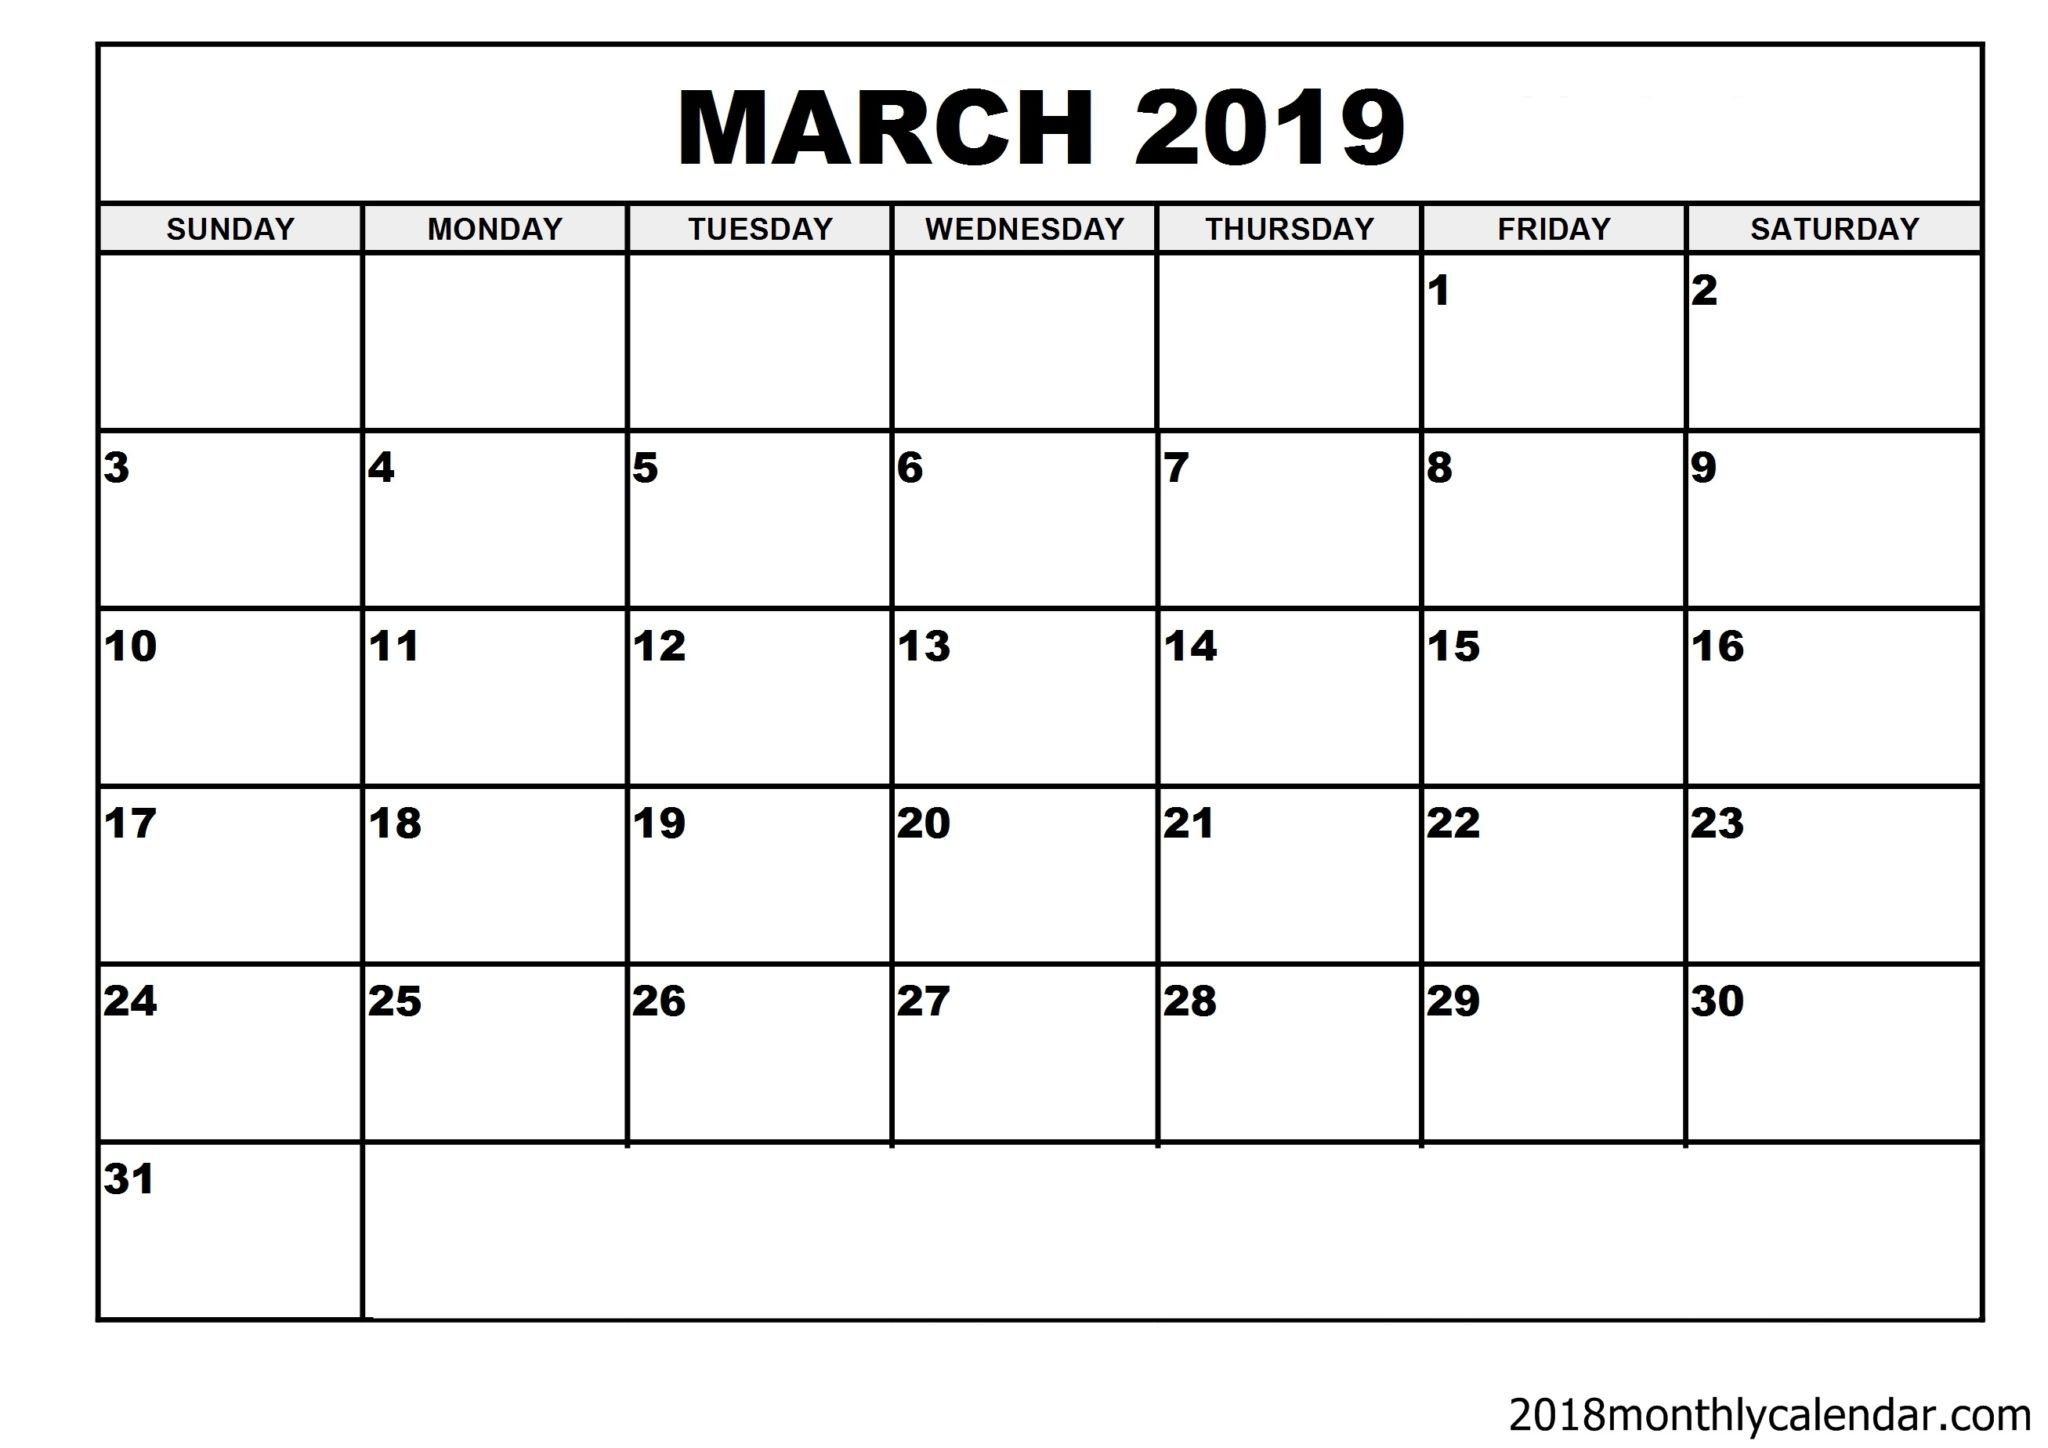 Download March 2019 Calendar – Blank Template - Editable Calendar pertaining to Blank Printable Calendar March